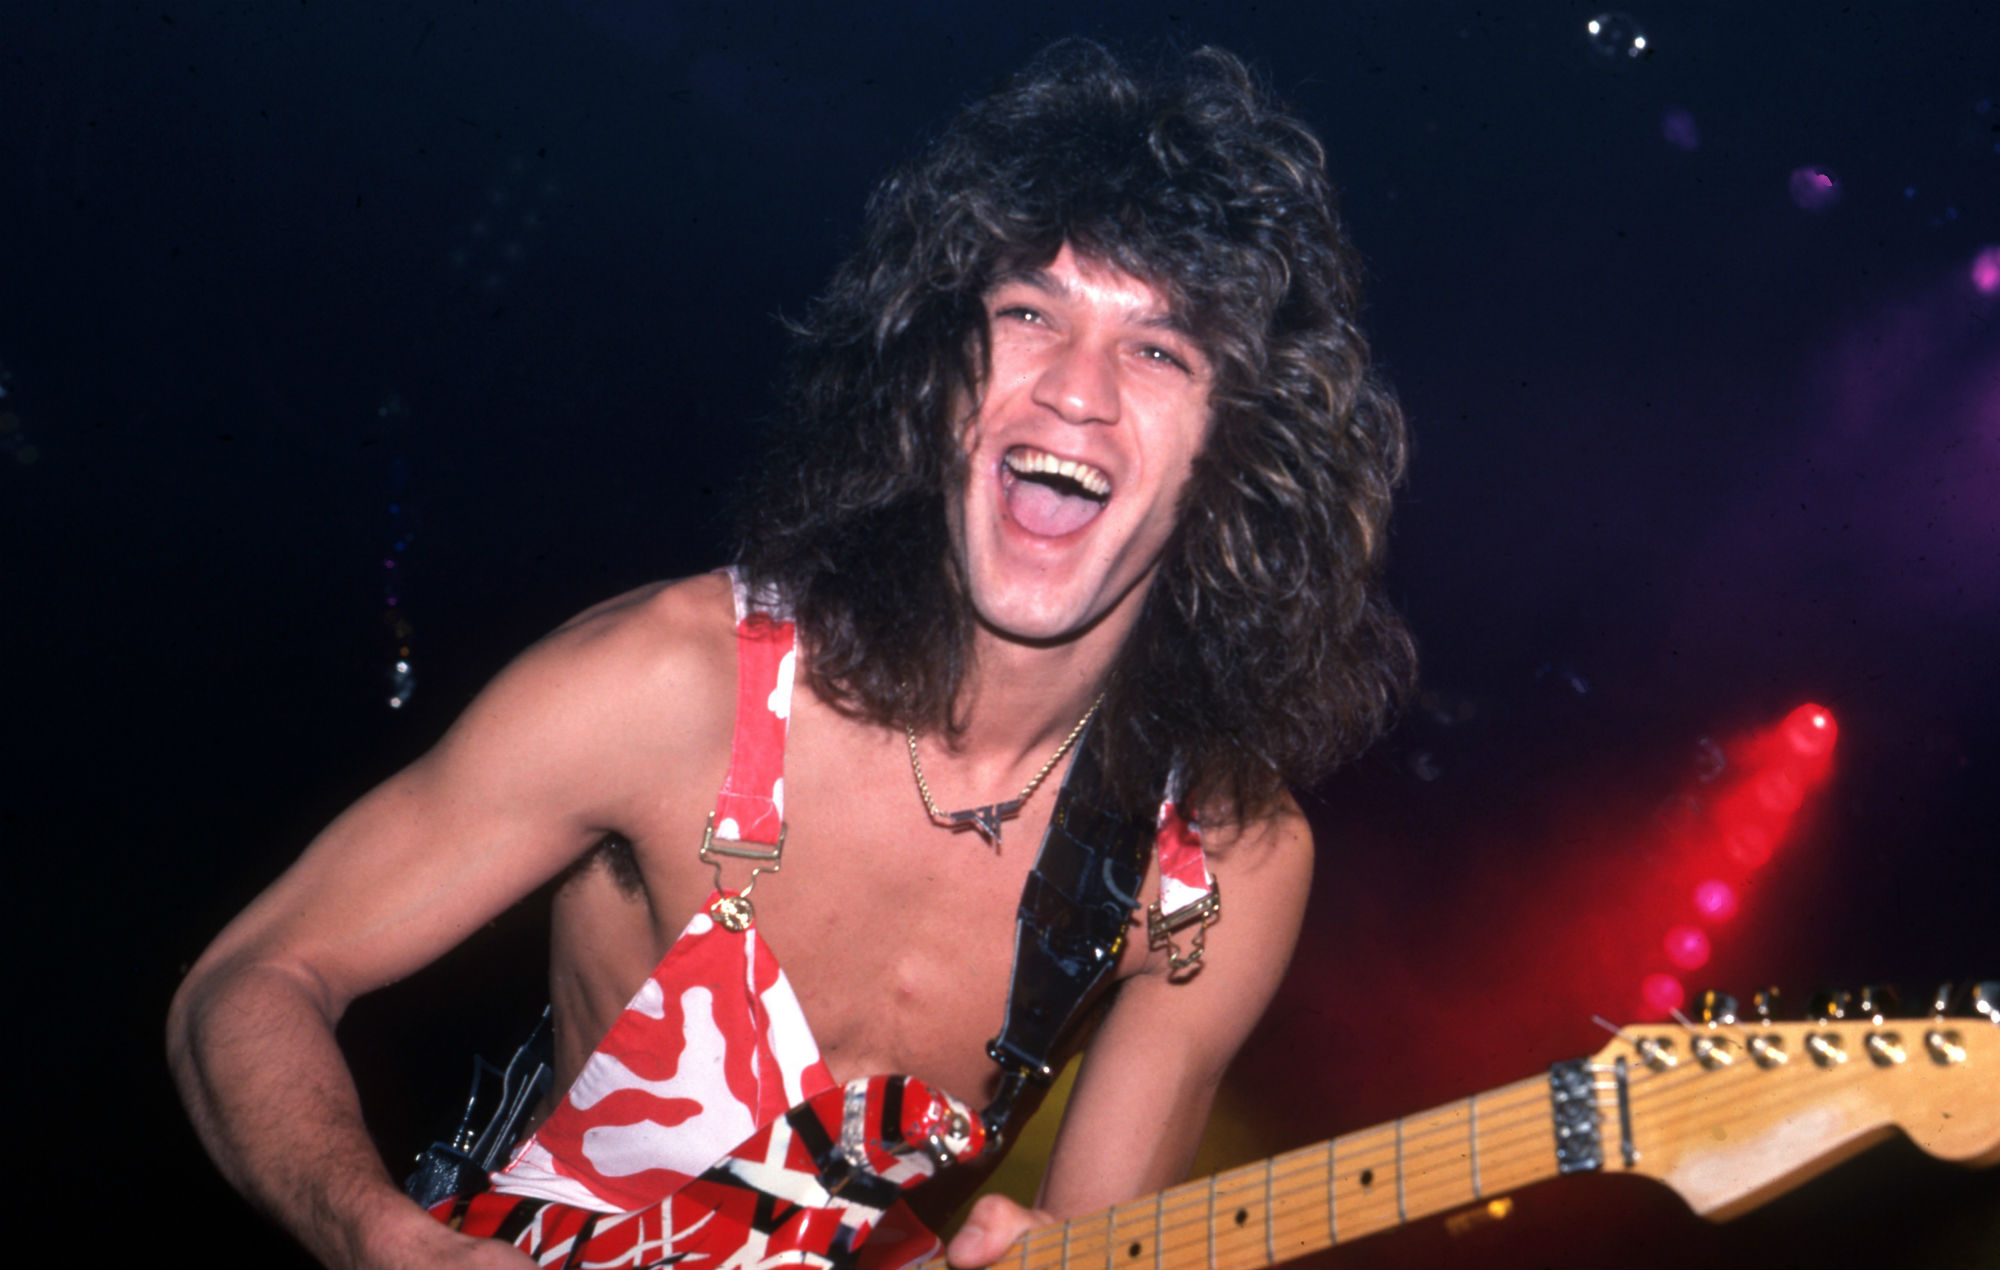 Three of Eddie Van Halen's guitars sell for $422,000 at auction